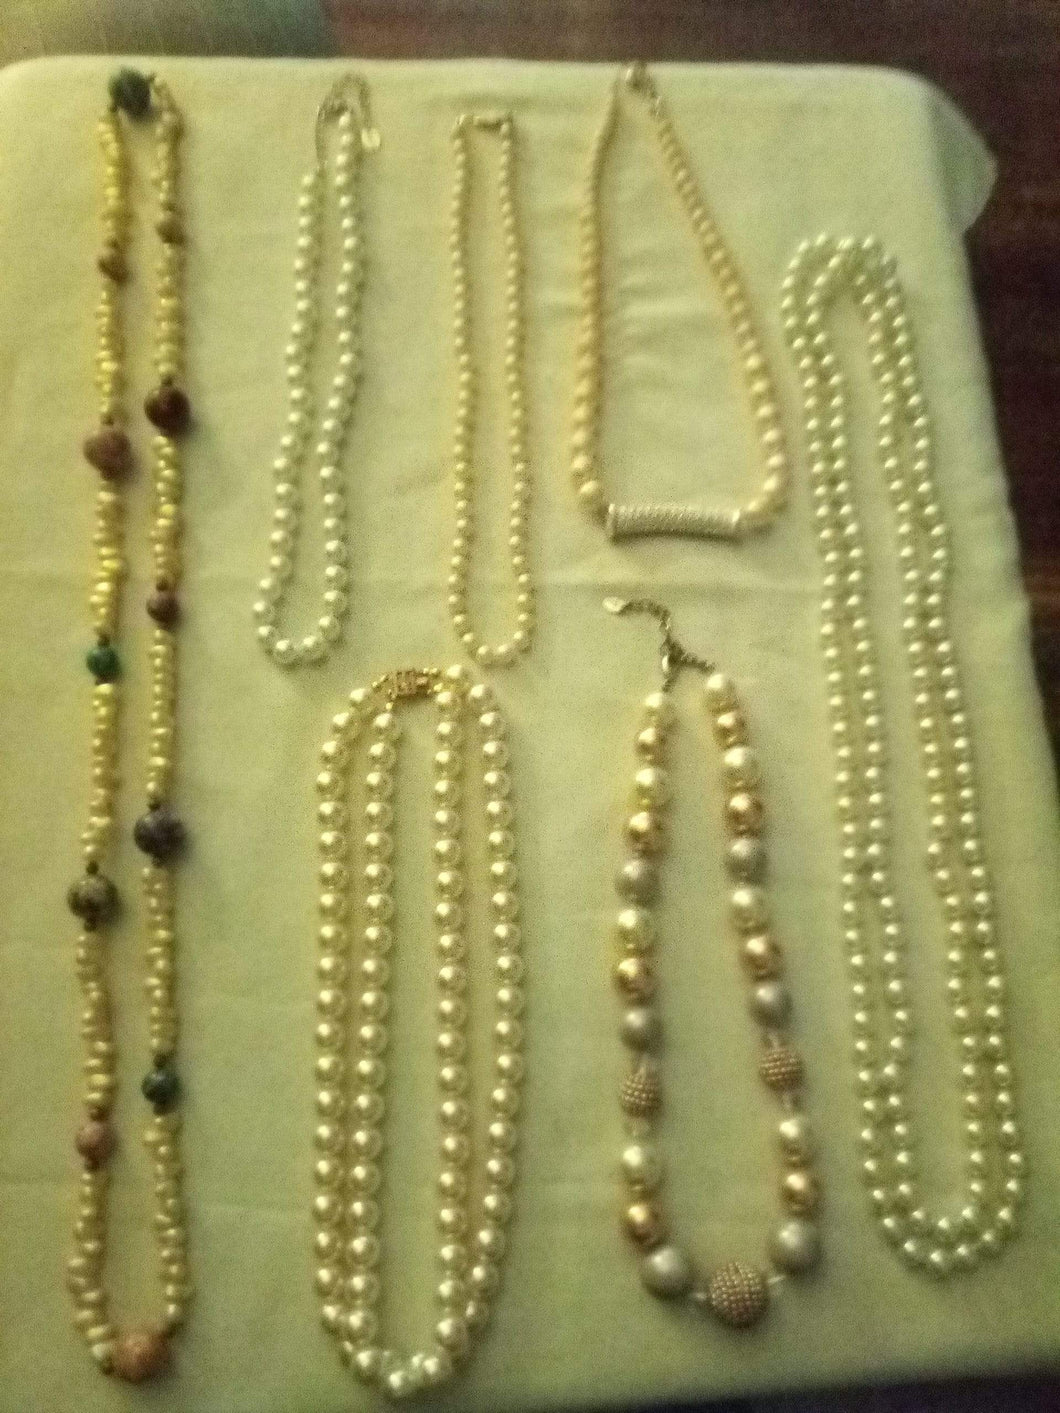 A vintage pearl like nice lot - B&P'sringsnthings